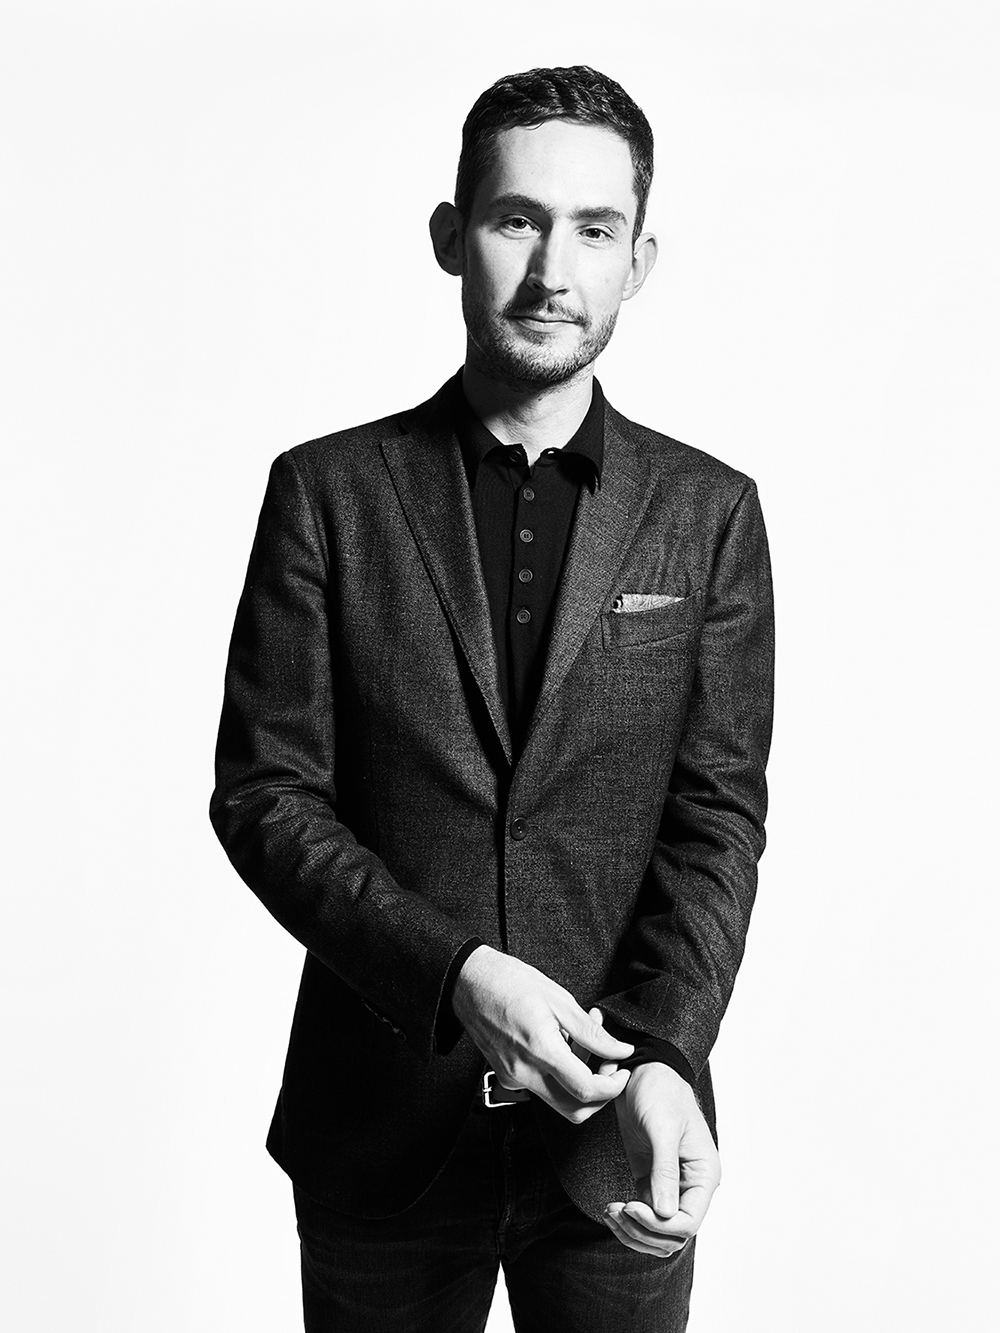 Art Streiber Photographs Instagram CEO Kevin Systrom And